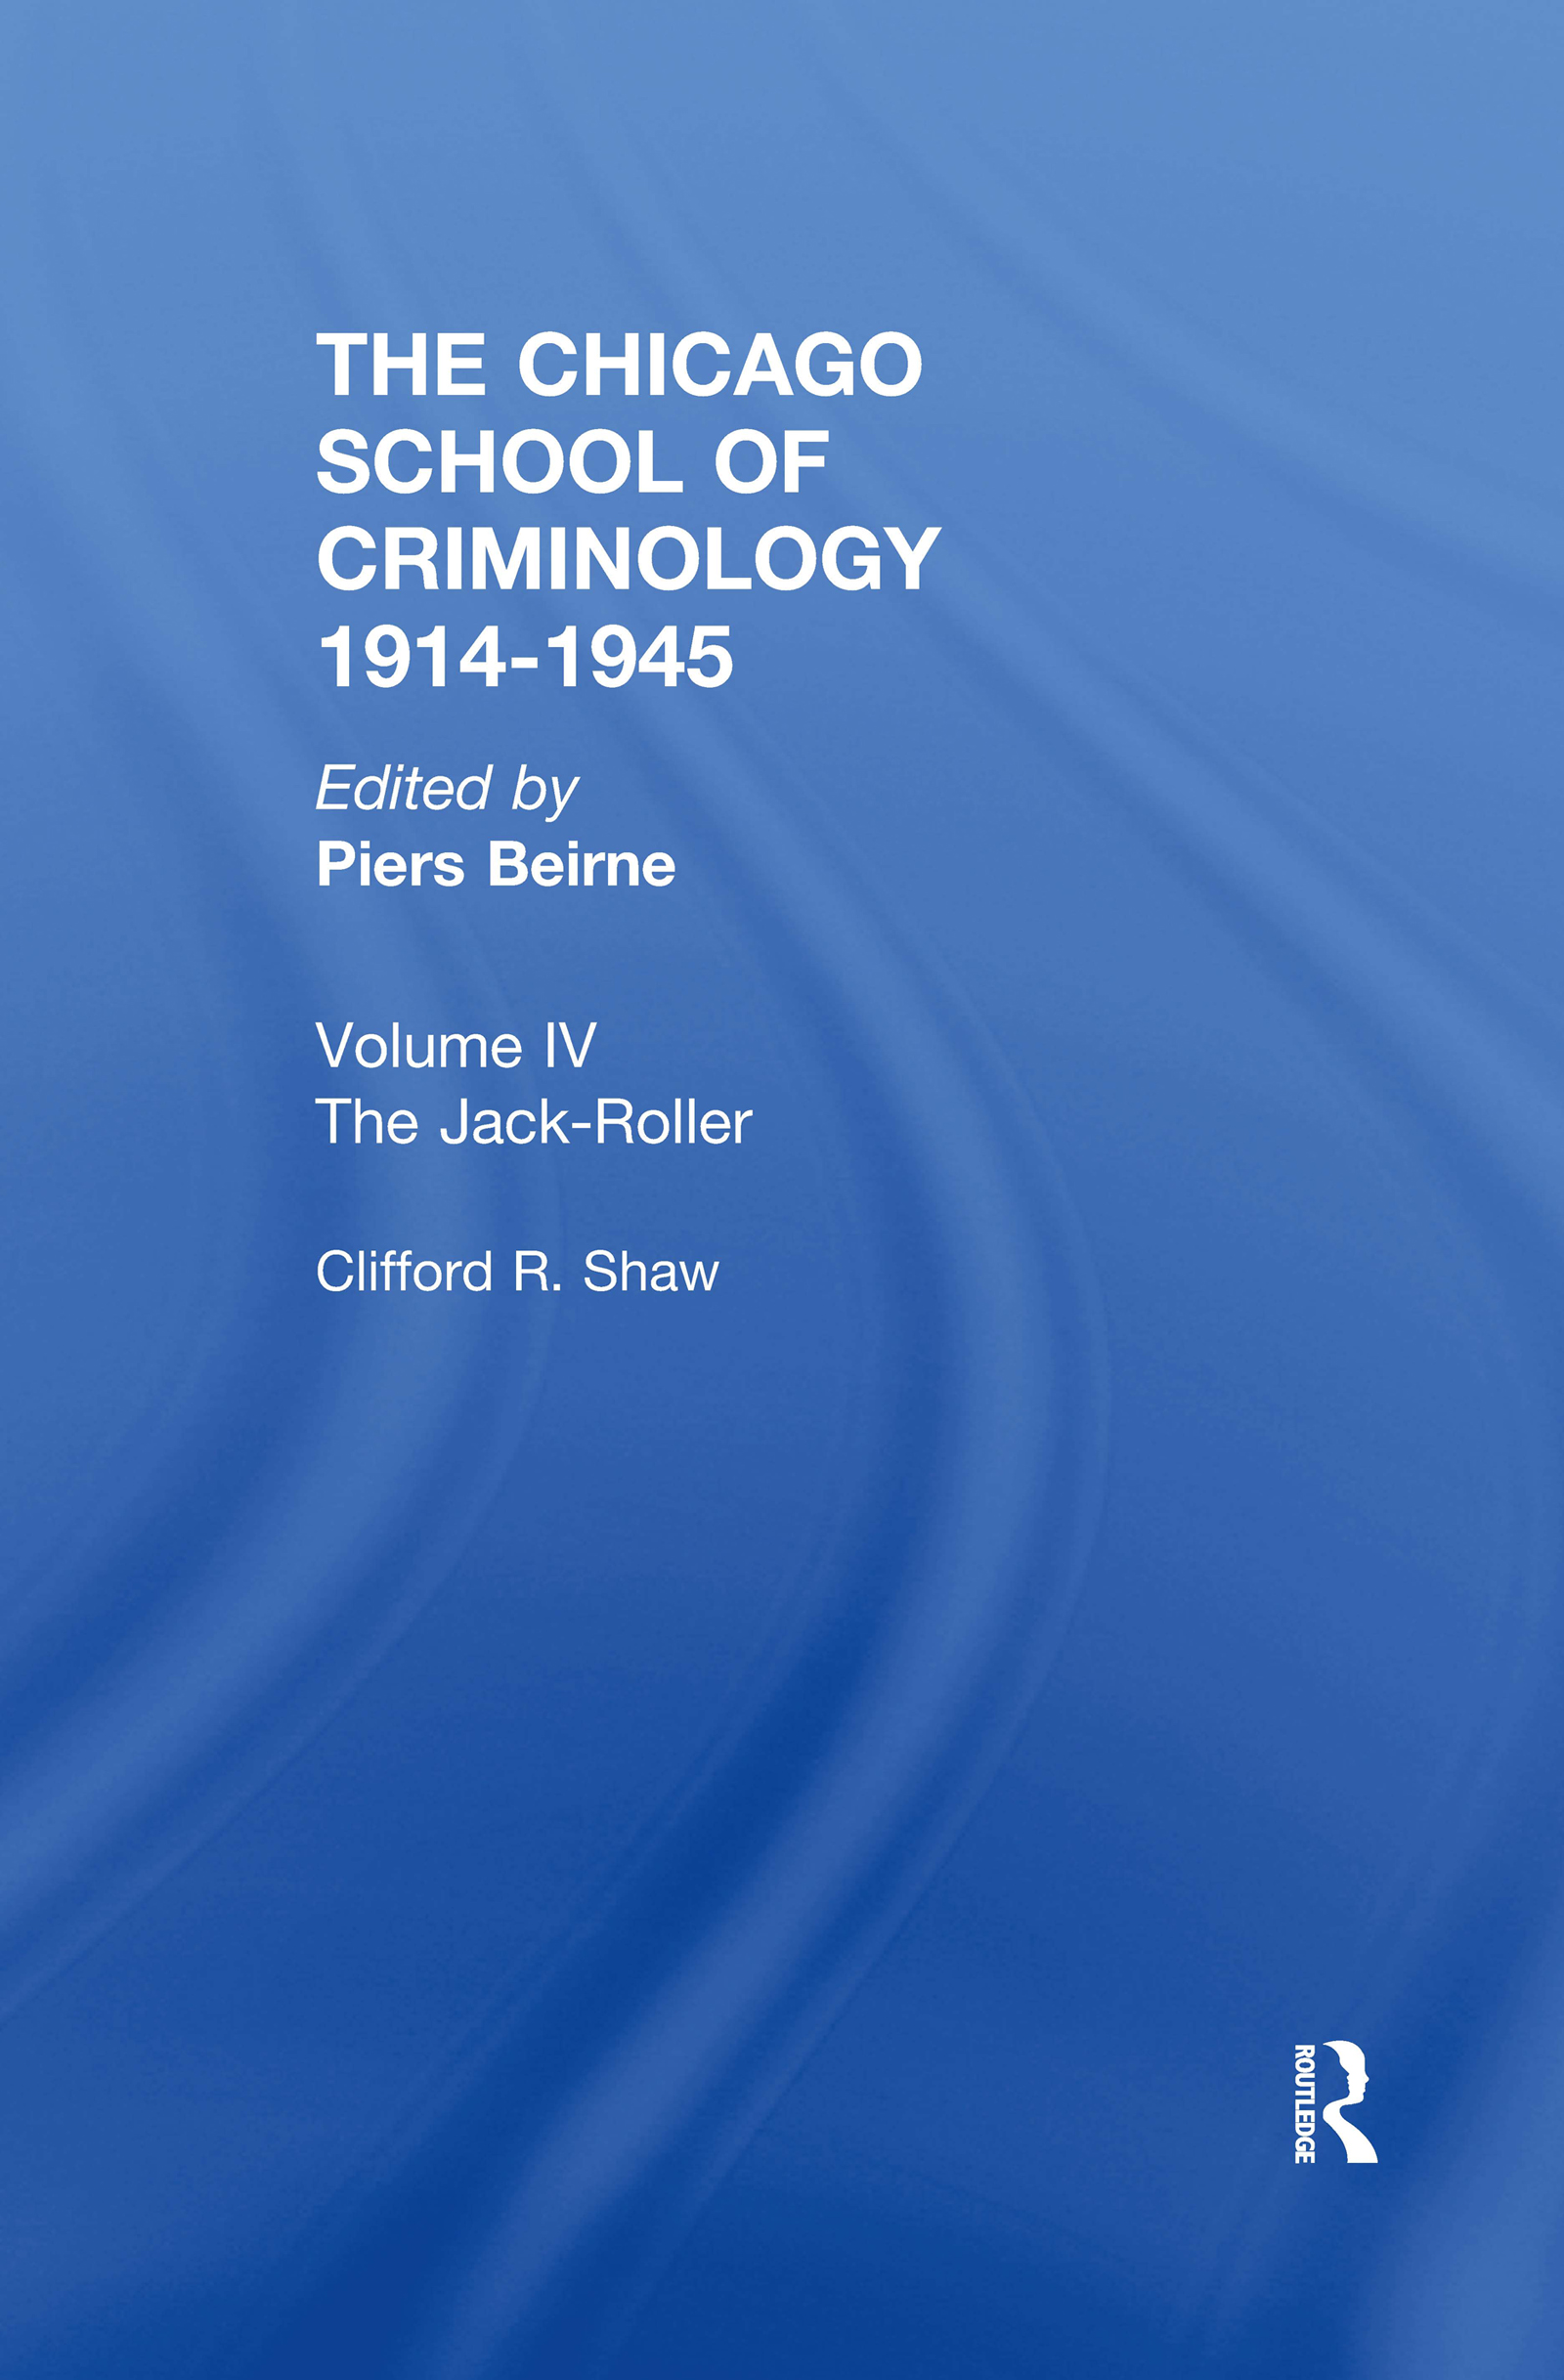 THE CHICAGO SCHOOL CRIMINOLOGY Volume 4: The Jack-Roller: A Delinquent Boy's Own Story by Clifford Shaw book cover